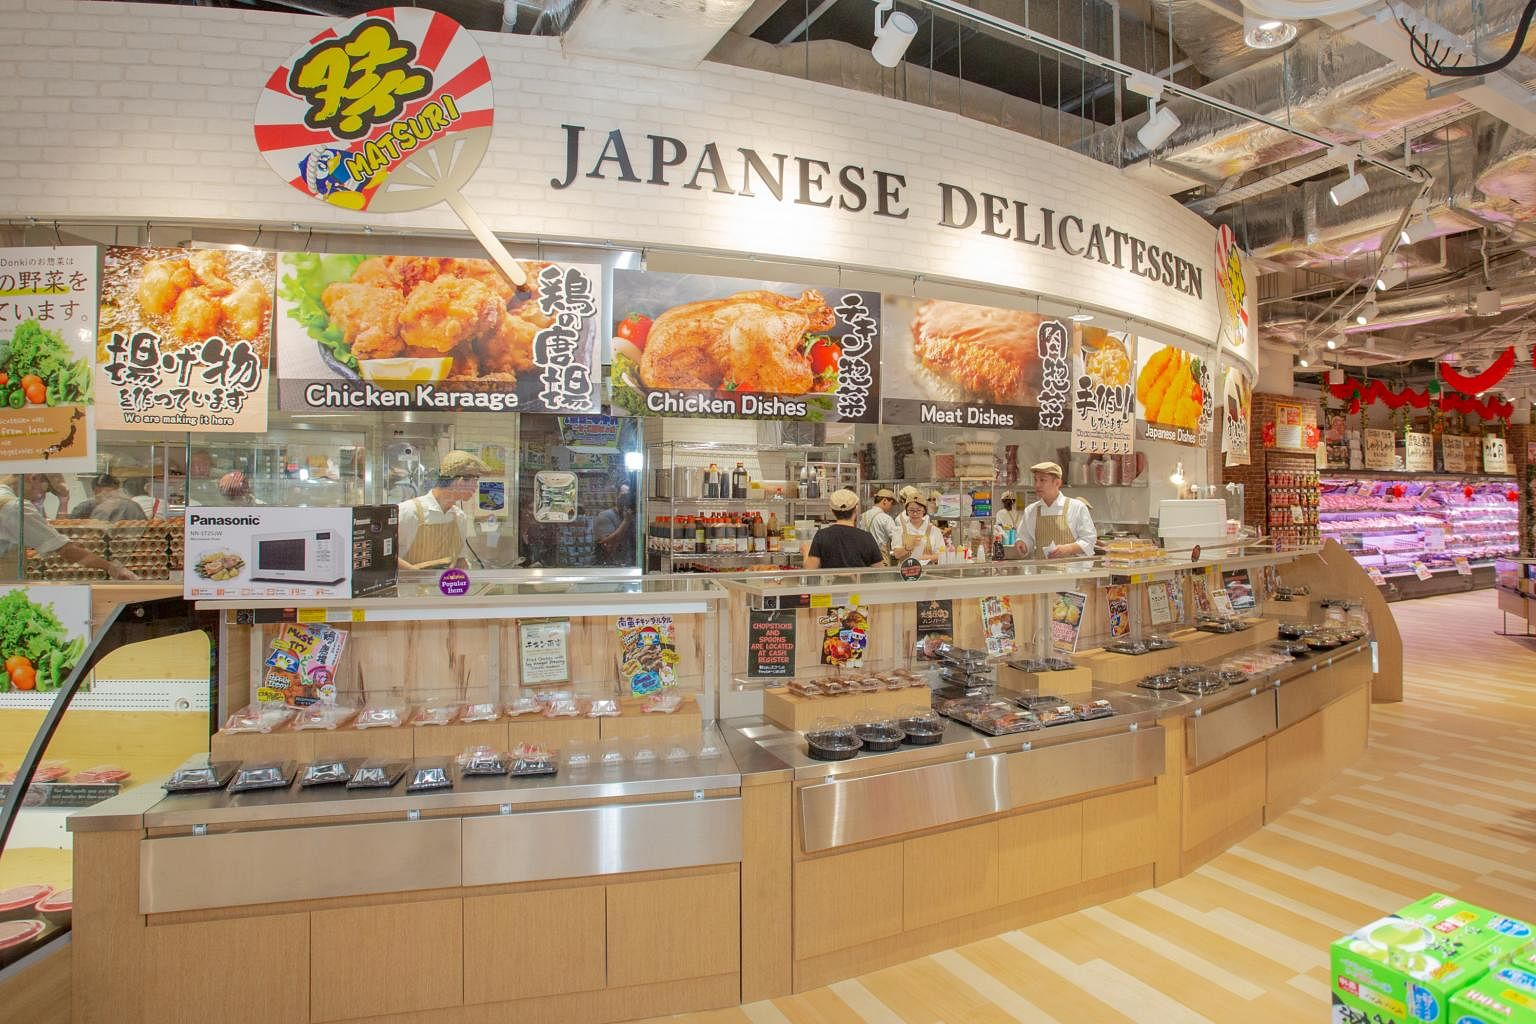 Japanese Discount Chain Don Don Donki Opens Third And Largest Outlet At City Square Mall Food News Top Stories The Straits Times